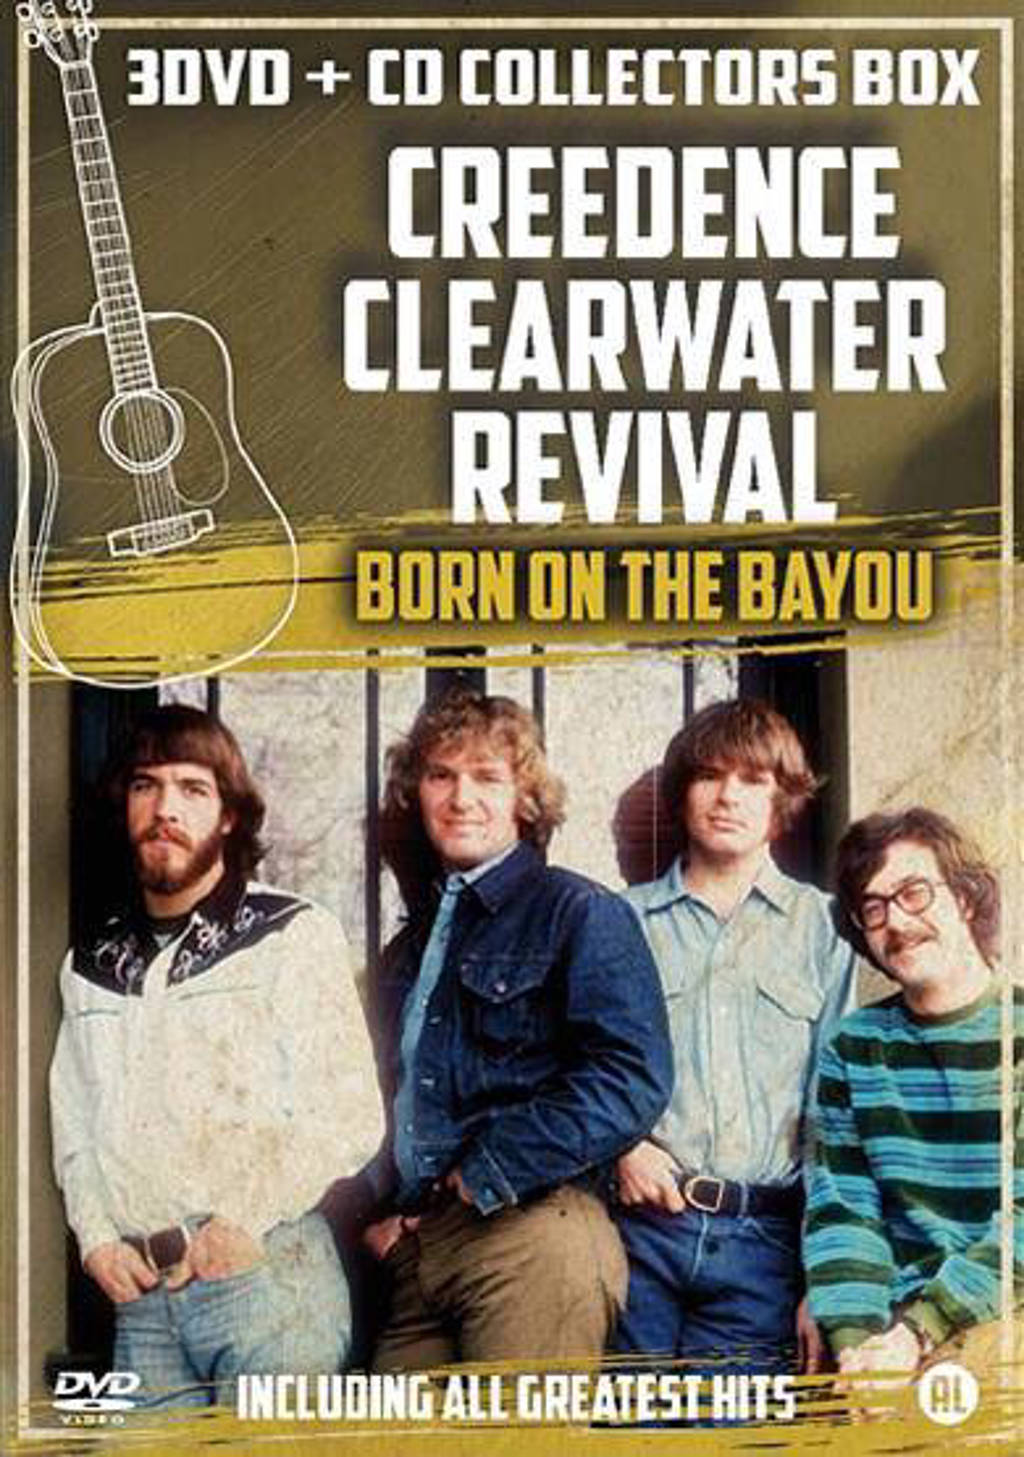 Creedence clearwater revival - Born on the Bayou (DVD)